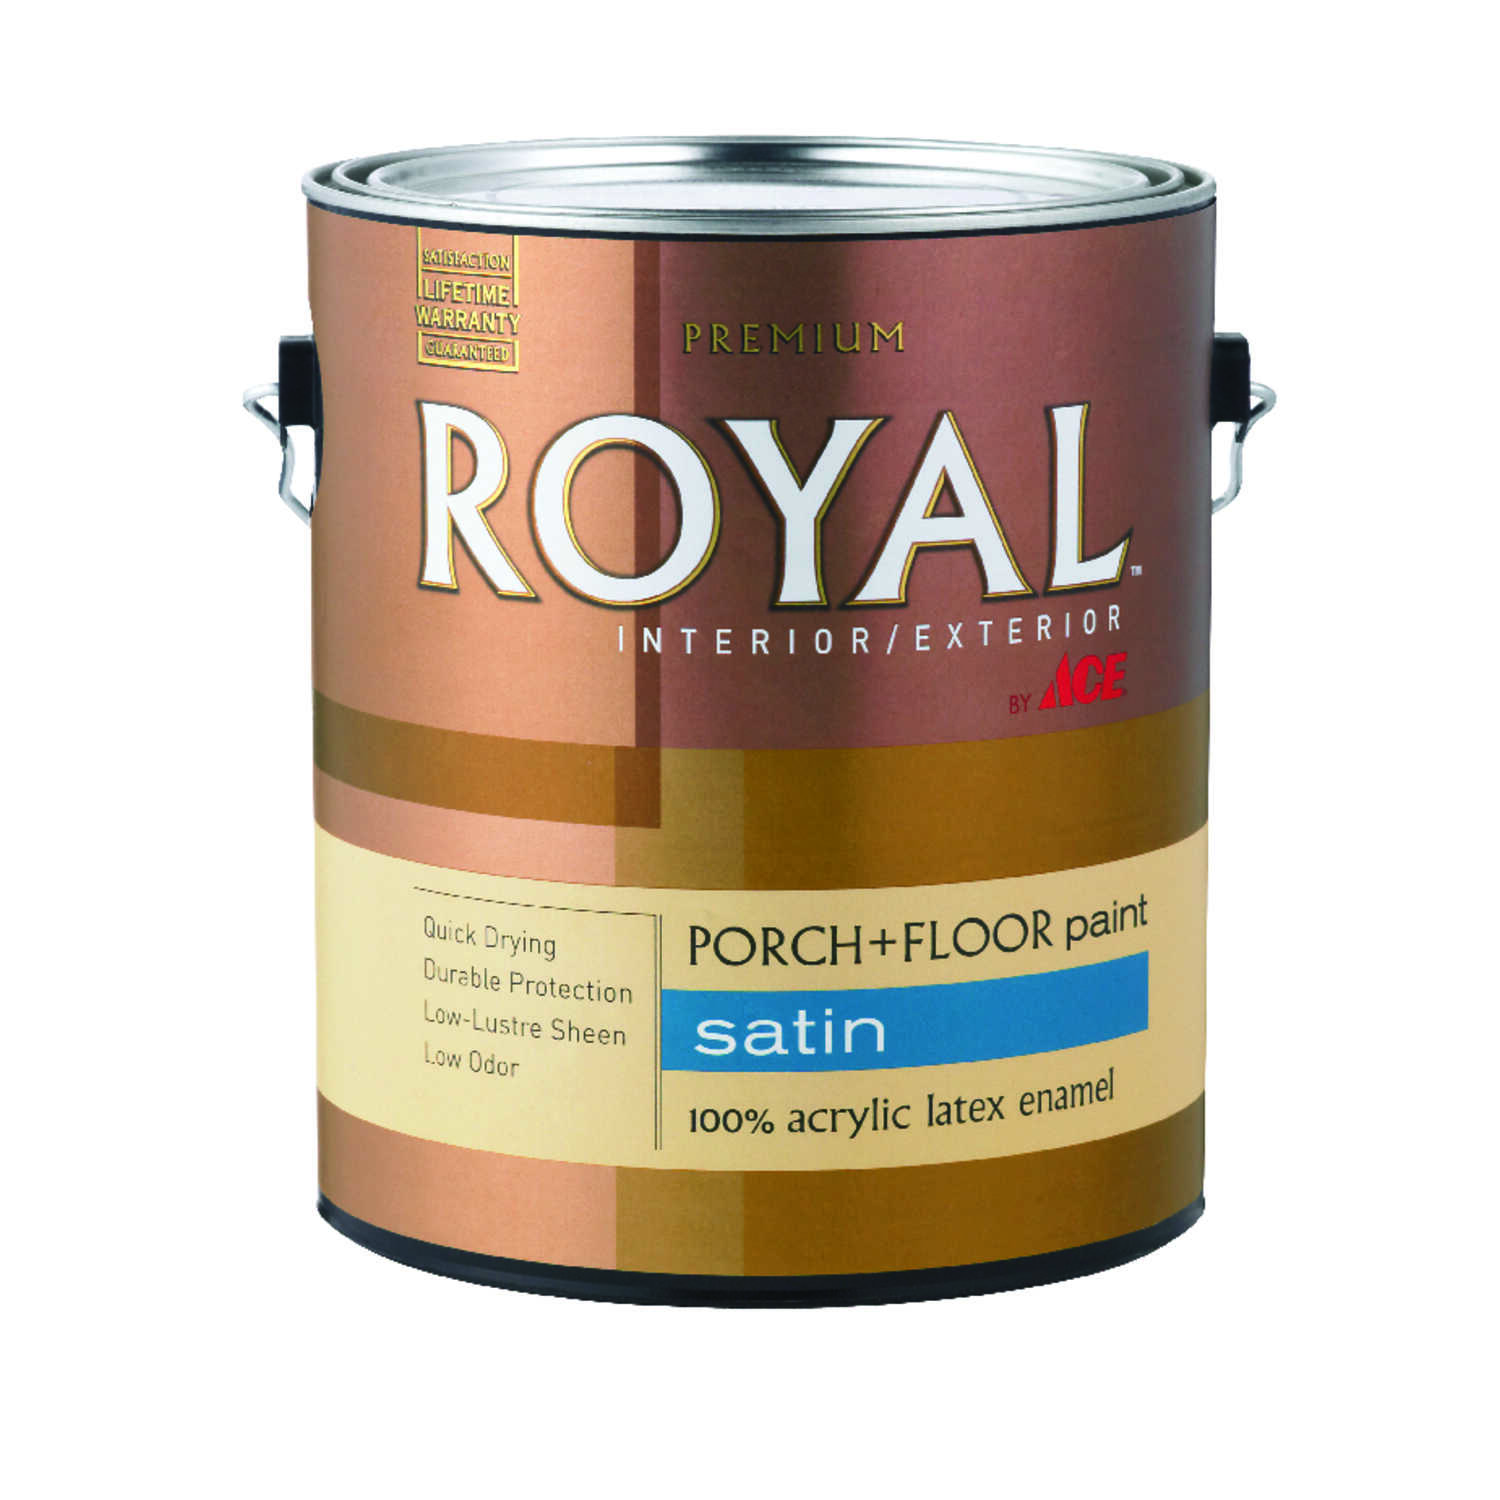 Ace  Royal  Satin  White  Acrylic Latex  Porch & Floor Paint  Satin  1 gal.